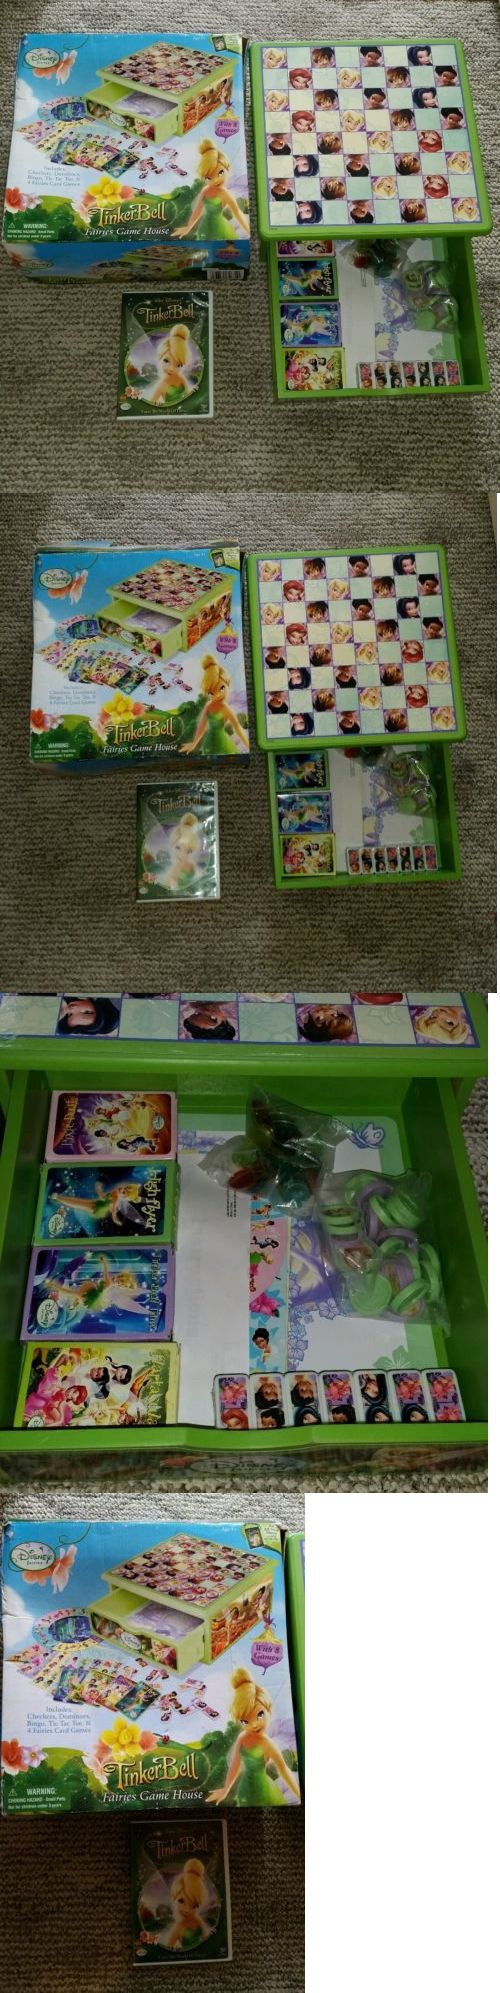 Tinker Bell Peter Pan 146041: Disney Fairies Tinkerbell Game House - 8 Games -Girl Play - W Dvd - New -> BUY IT NOW ONLY: $32.95 on eBay!